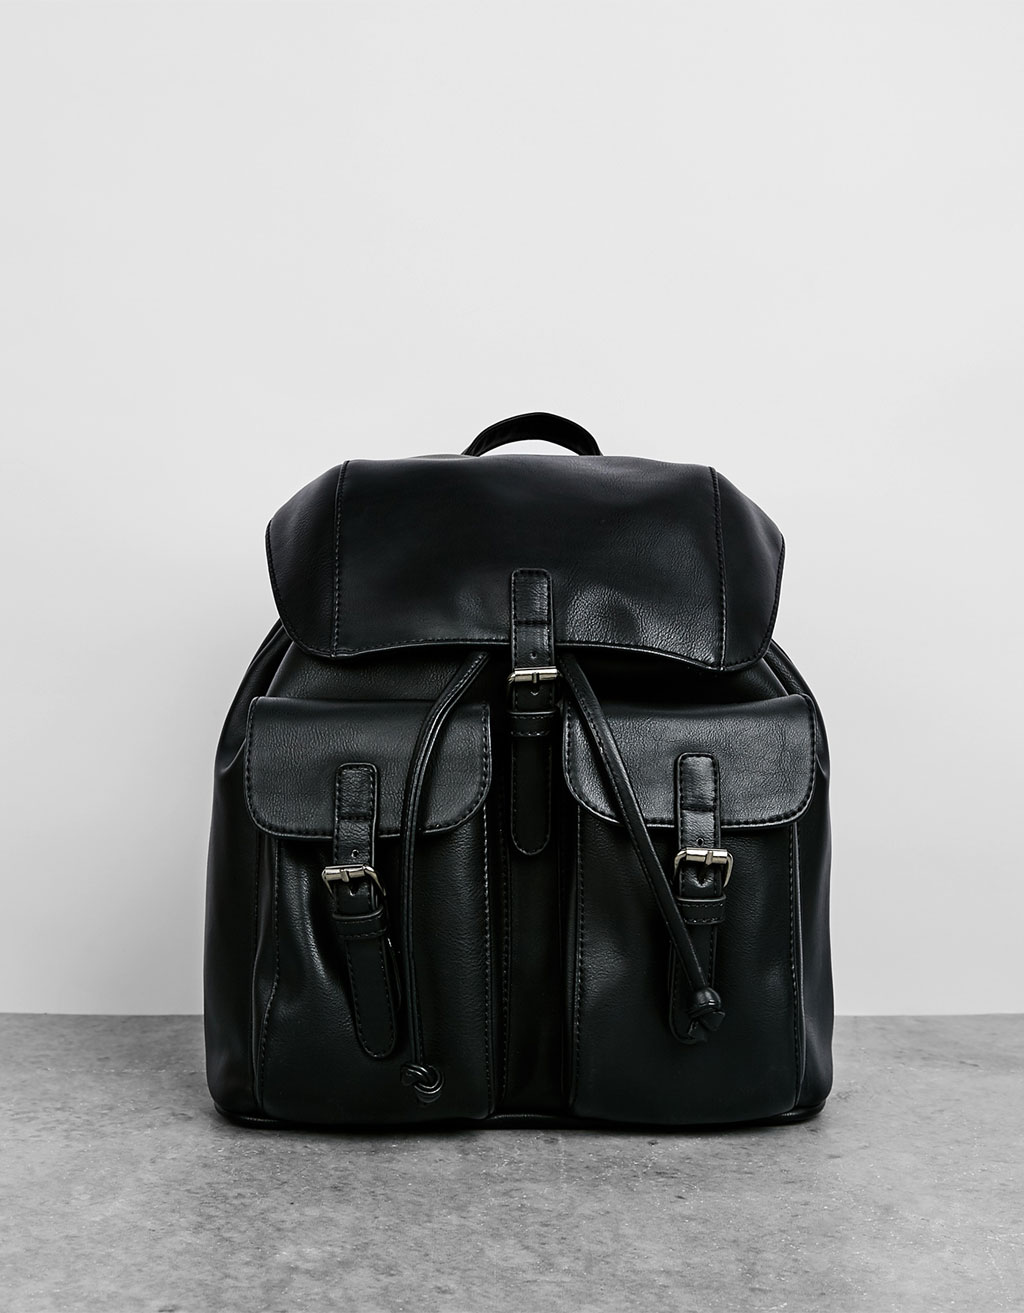 Black leather-effect backpack